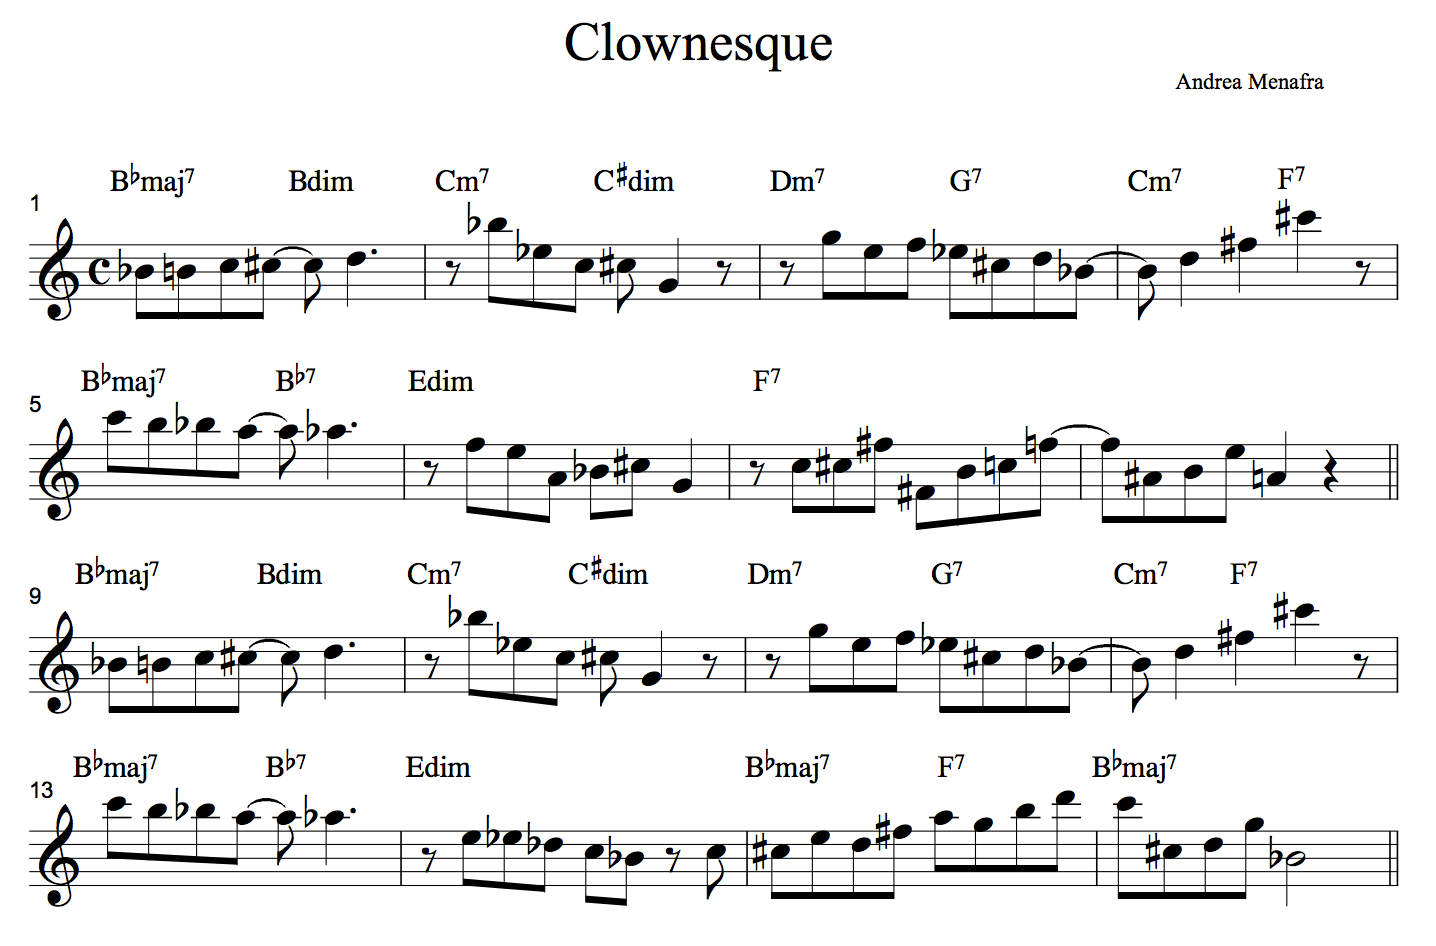 Clownesque - Andrea Menafra